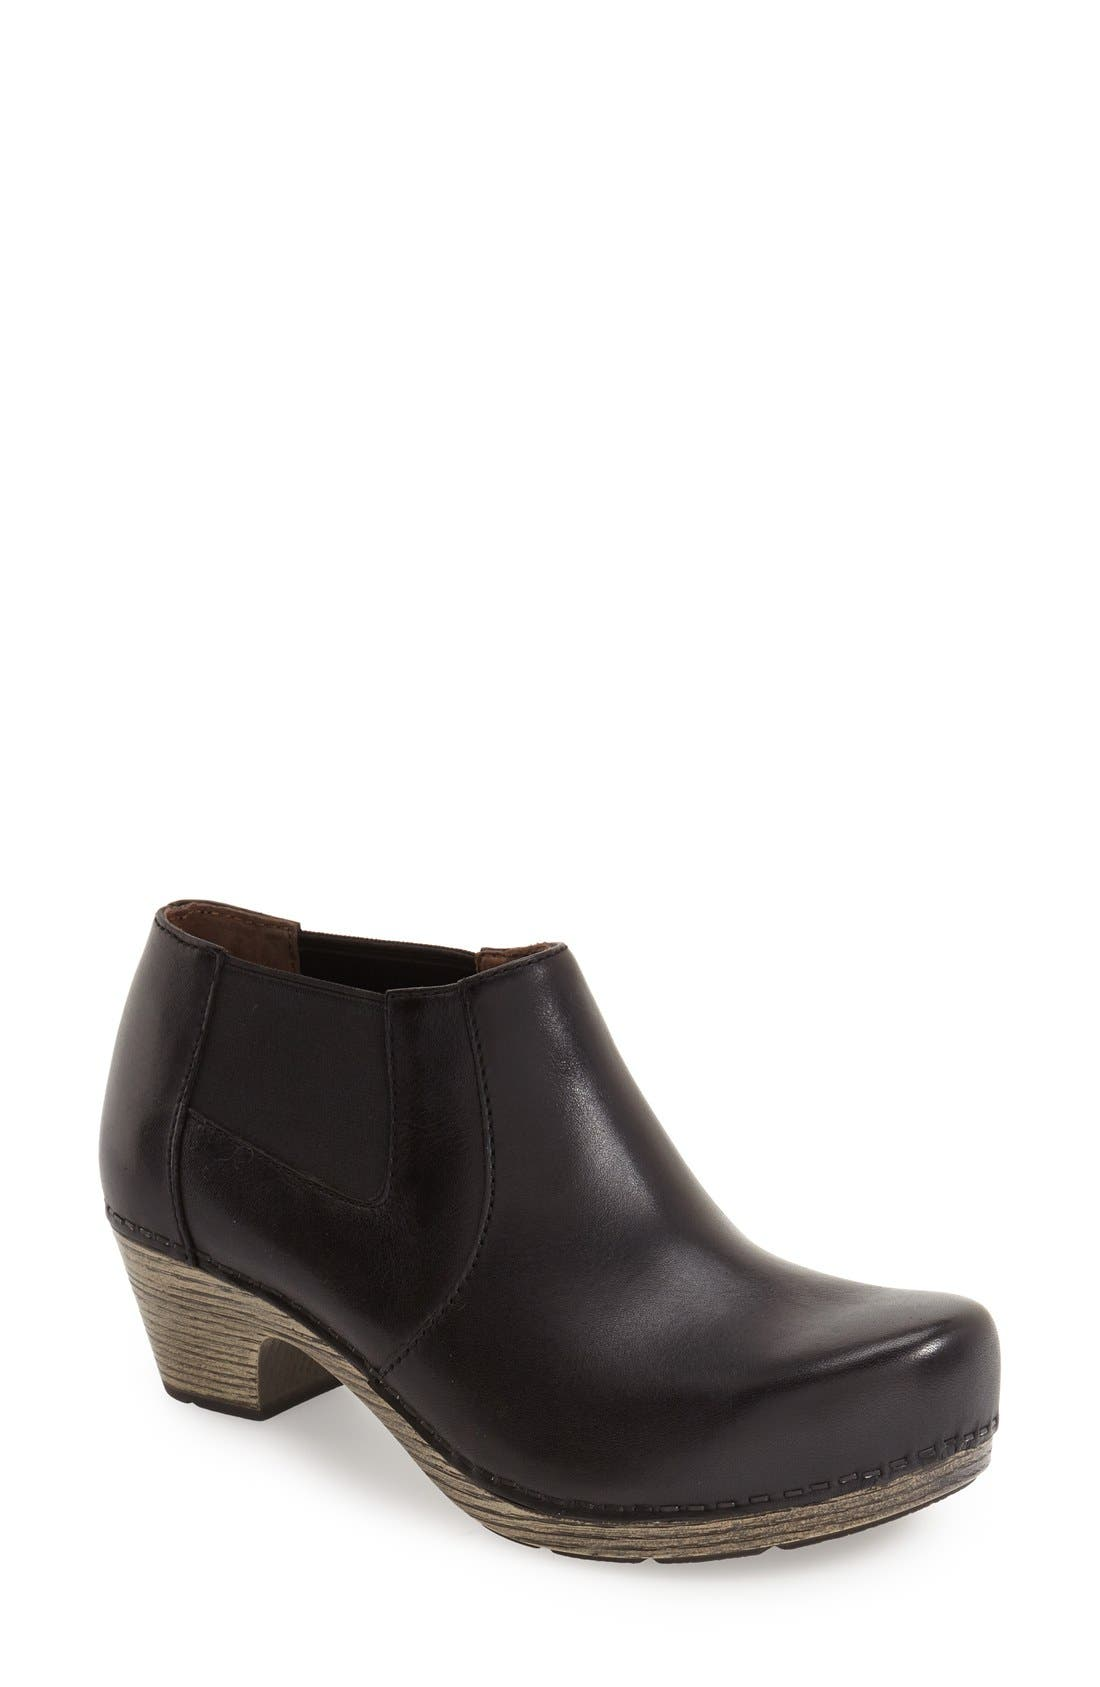 Dansko 'Marilyn' Midi Chelsea Boot (Women)